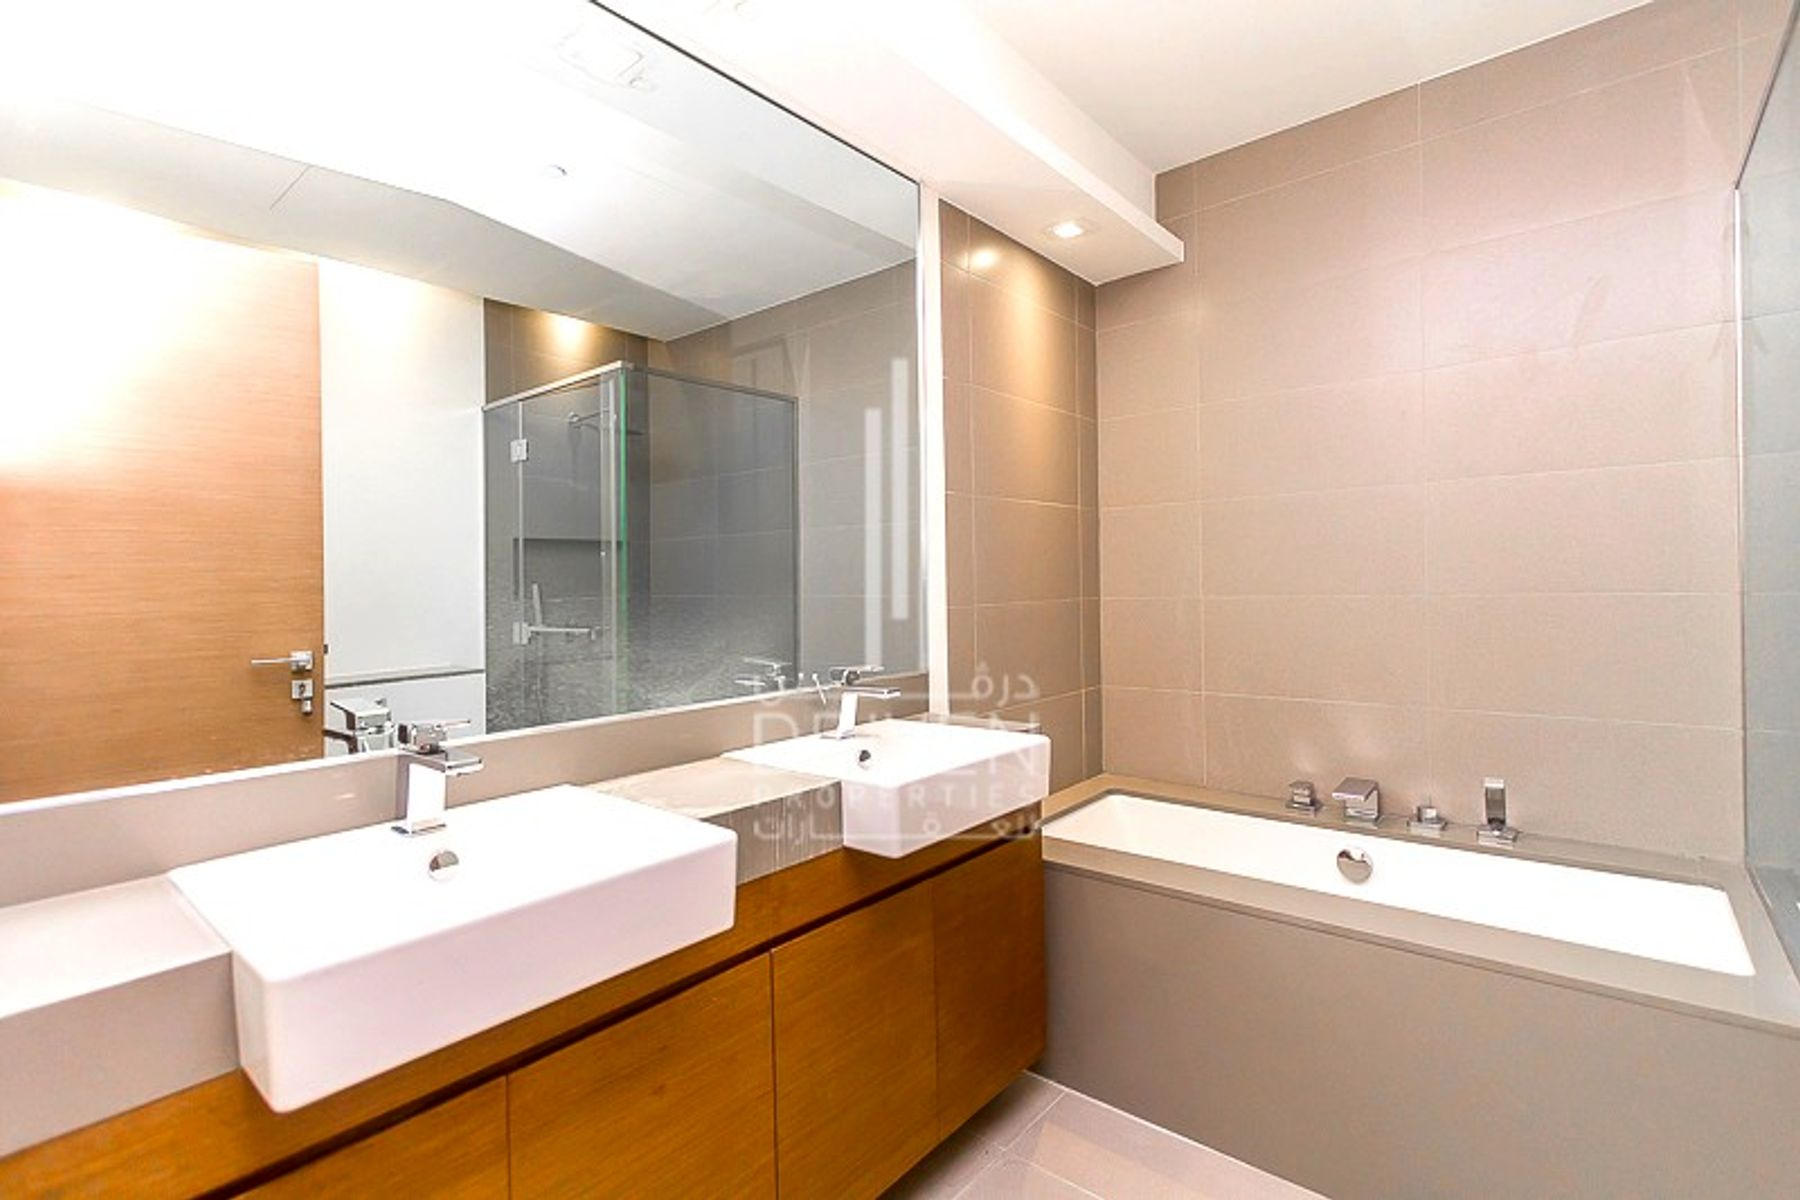 Affordable 2BR Apt for Rent in City Walk